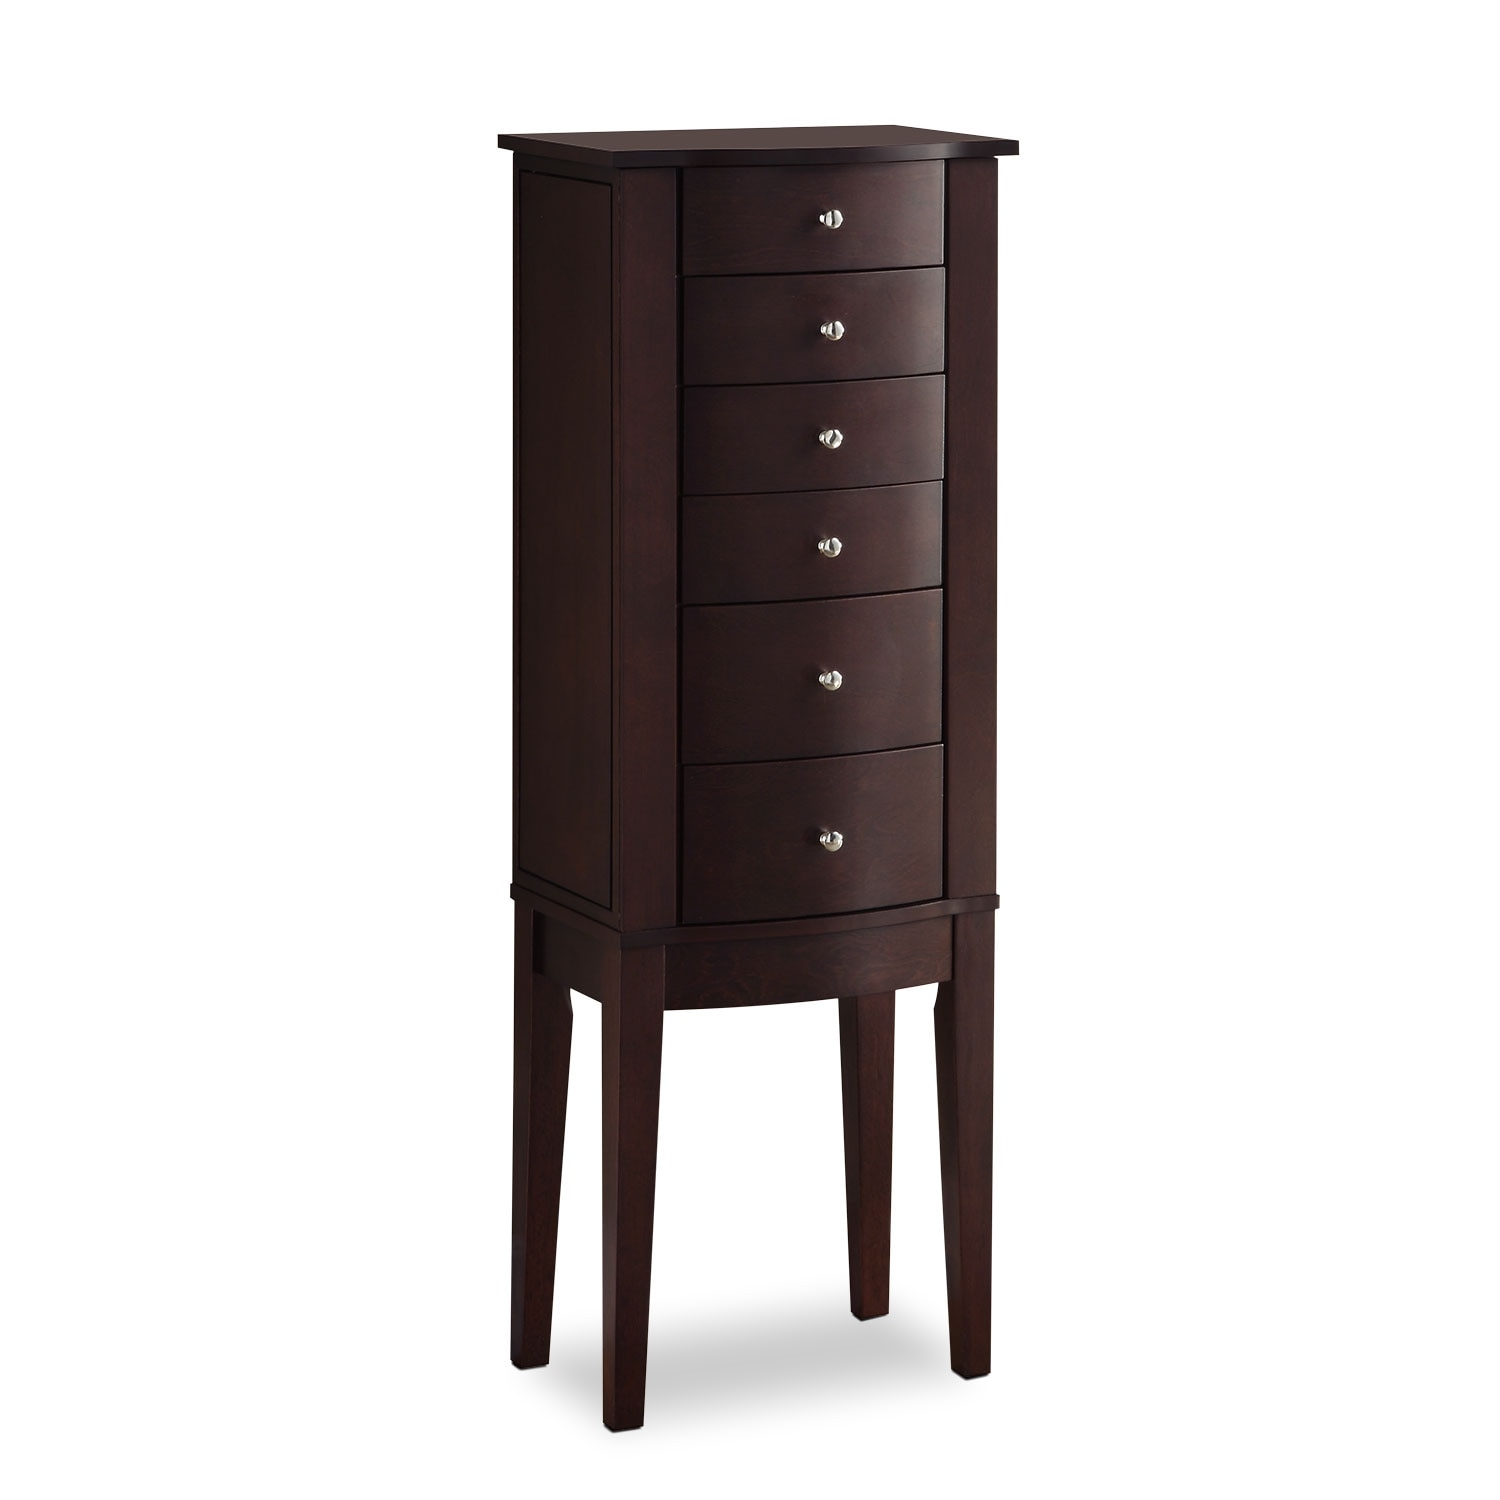 Bedroom Furniture - Abbie Jewelry Armoire